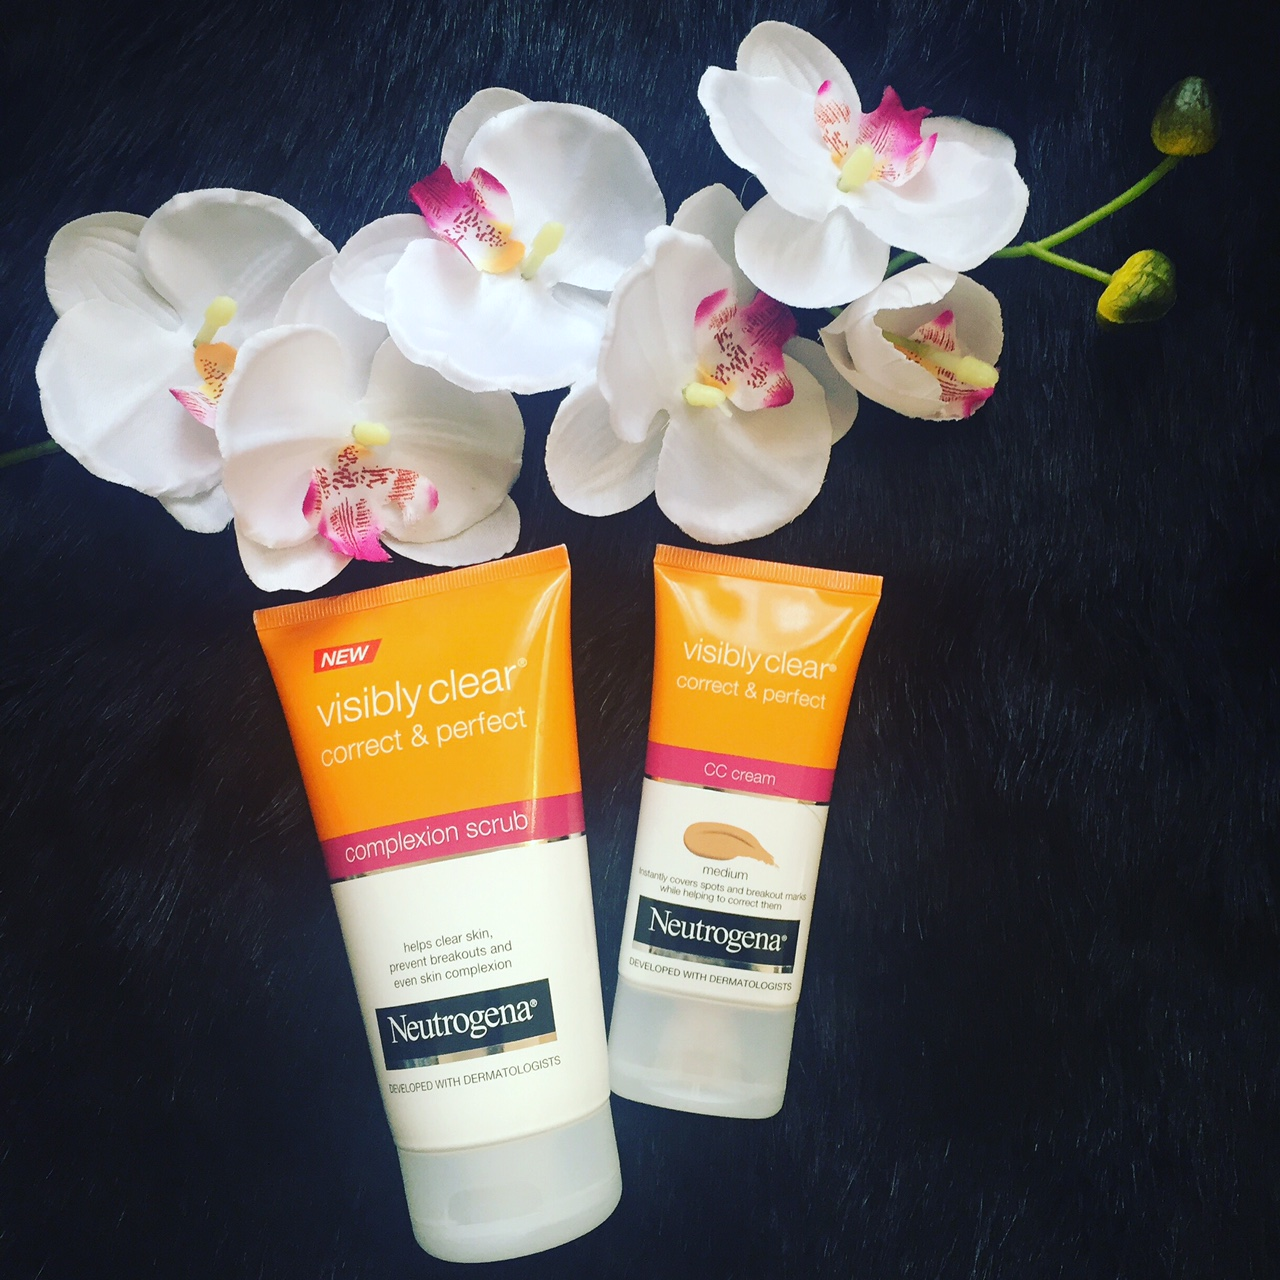 Neutrogena Visibly Clear Correct & Perfect Review | #SeeWhatsPossibleSA - glamhipsterdiaries